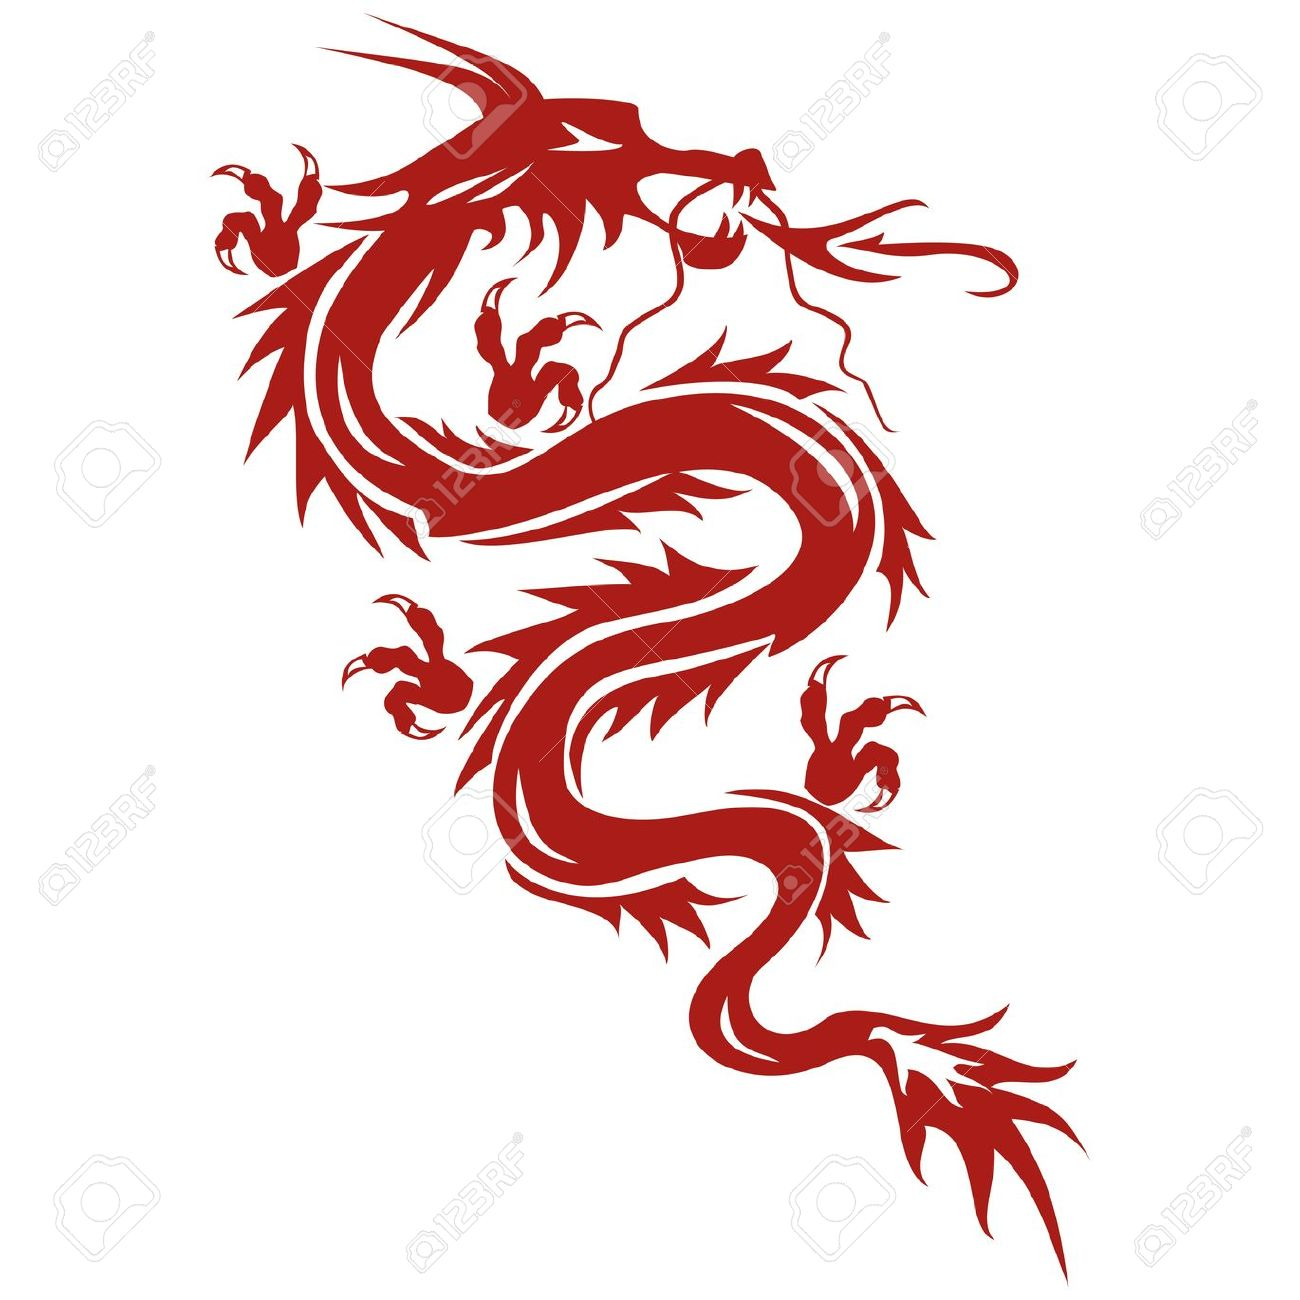 1300x1300 Dragon Fire Stock Vector Illustration And Royalty Free Dragon Fire